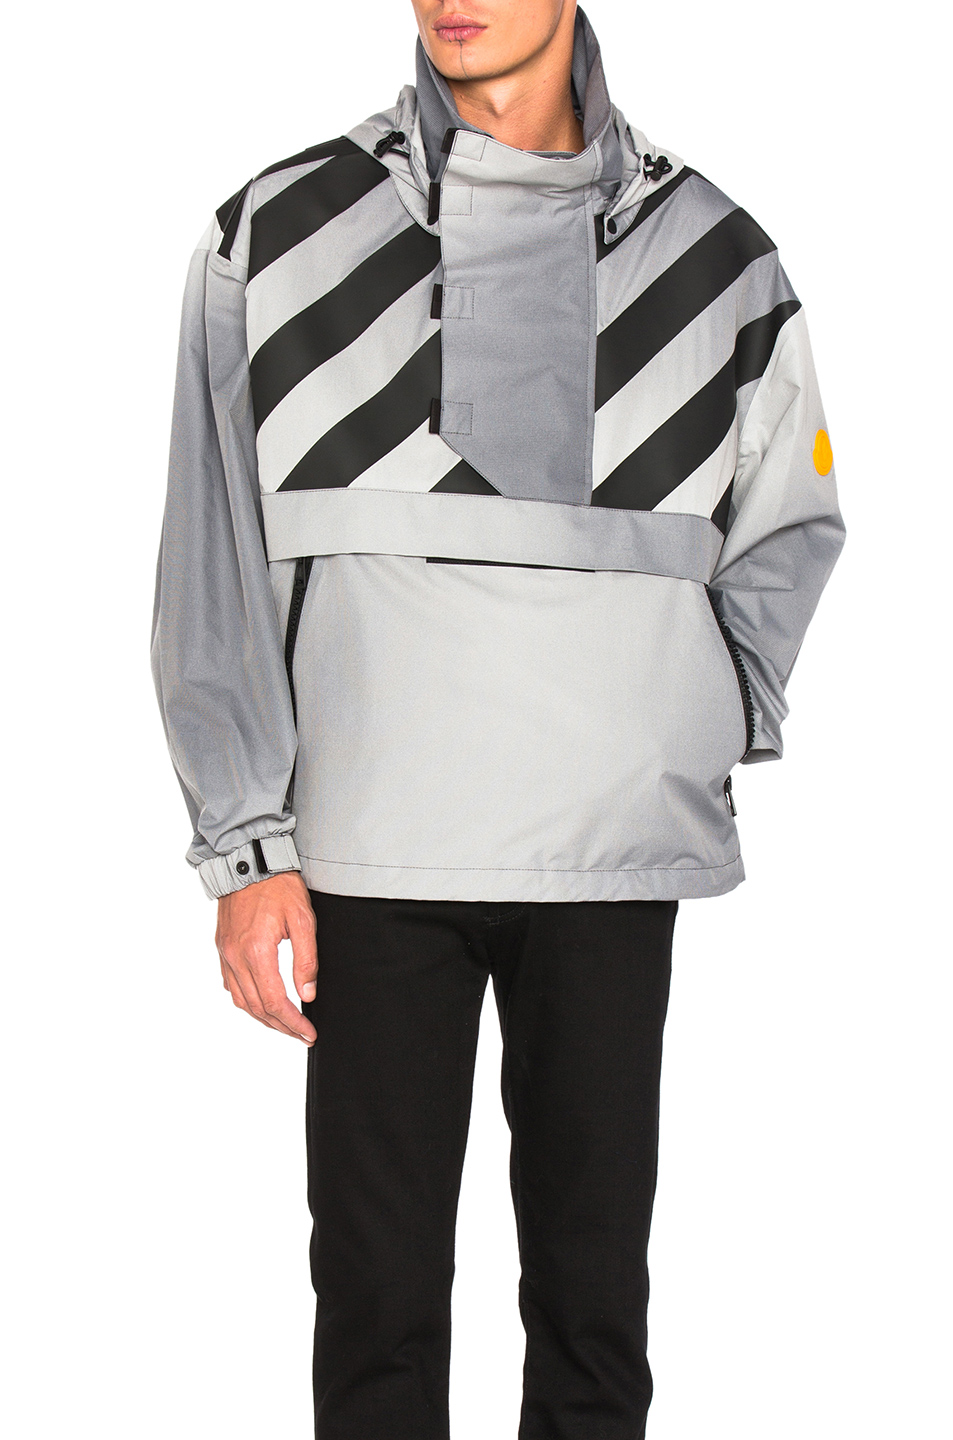 Moncler x Off White Donville Jacket in Gray,Stripes